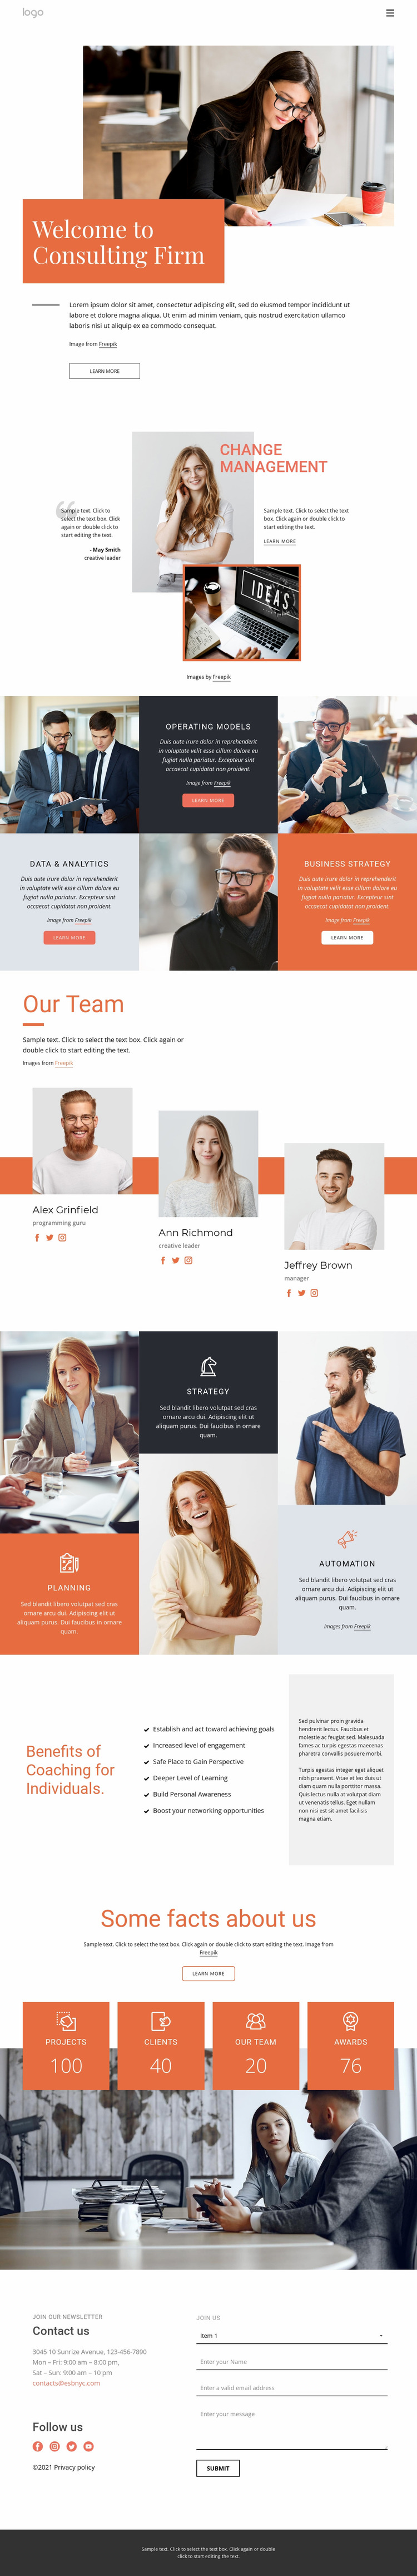 Consulting firm Website Mockup